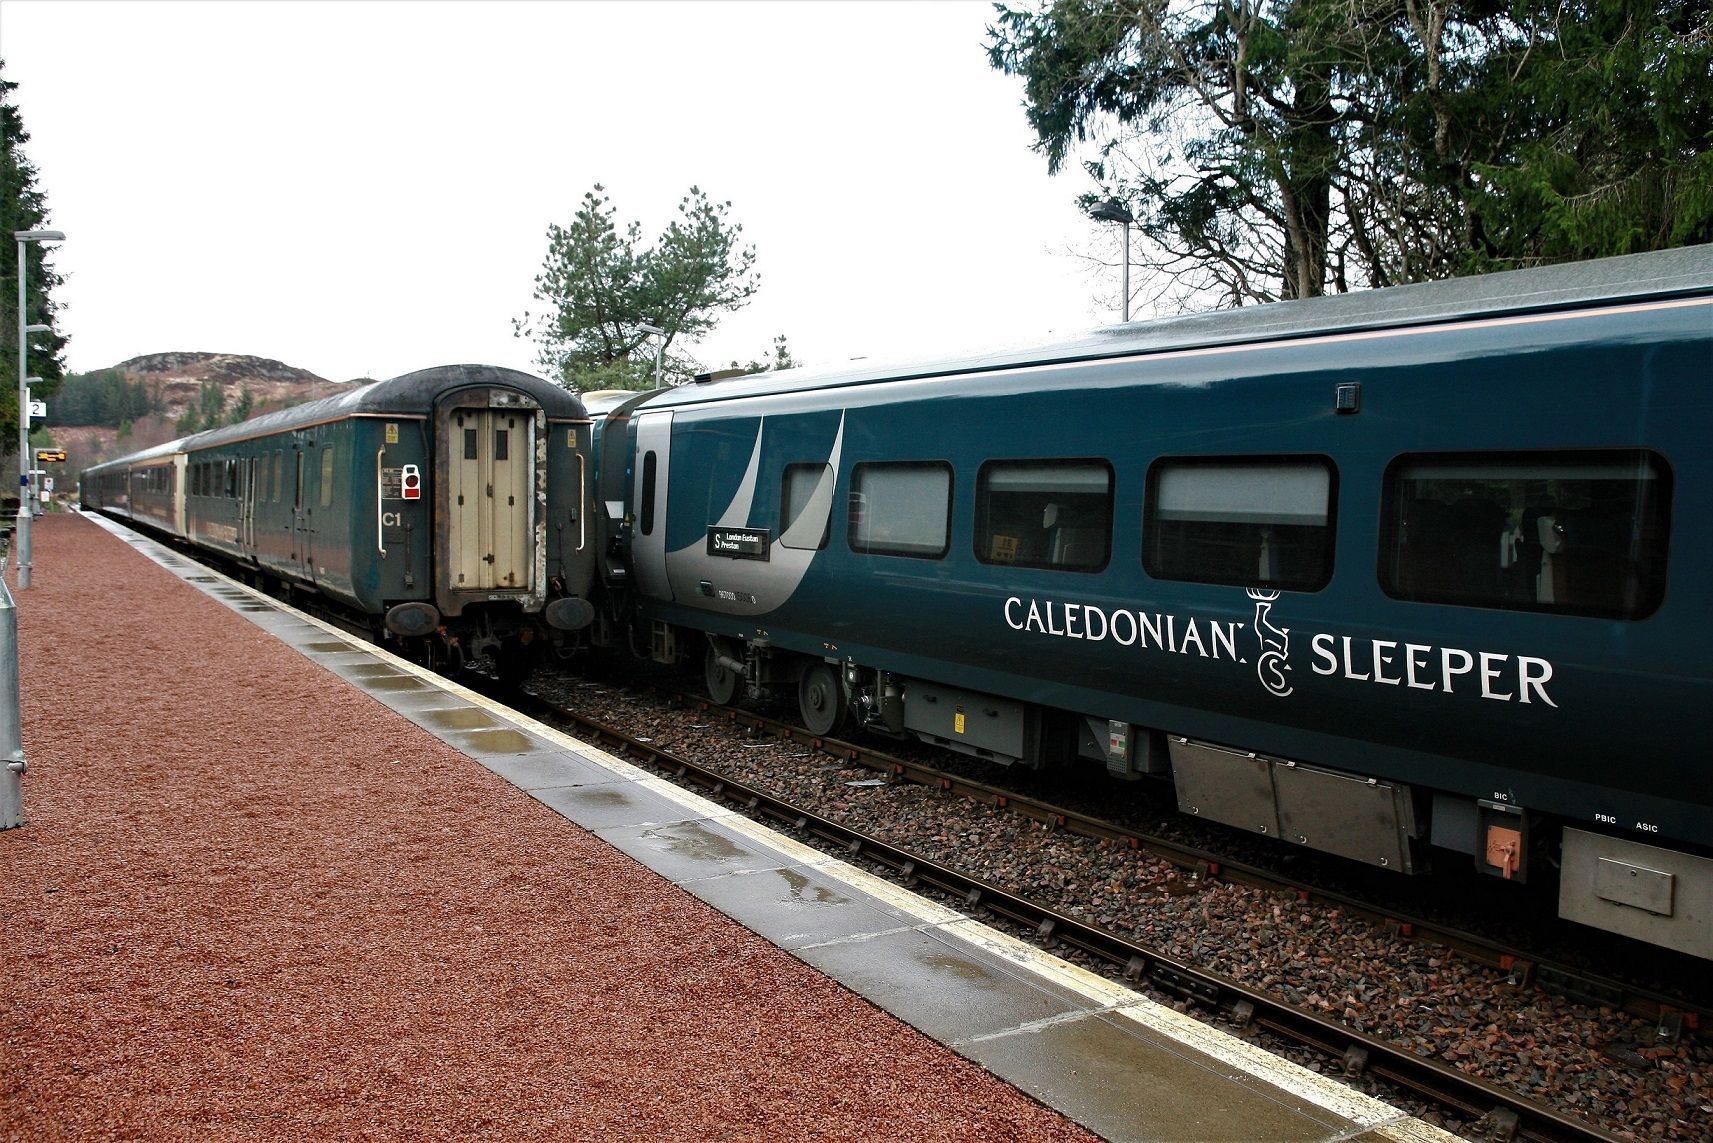 Image showing both Mk3 and Mk5 Caledonian Sleeper vehicles at Tulloch